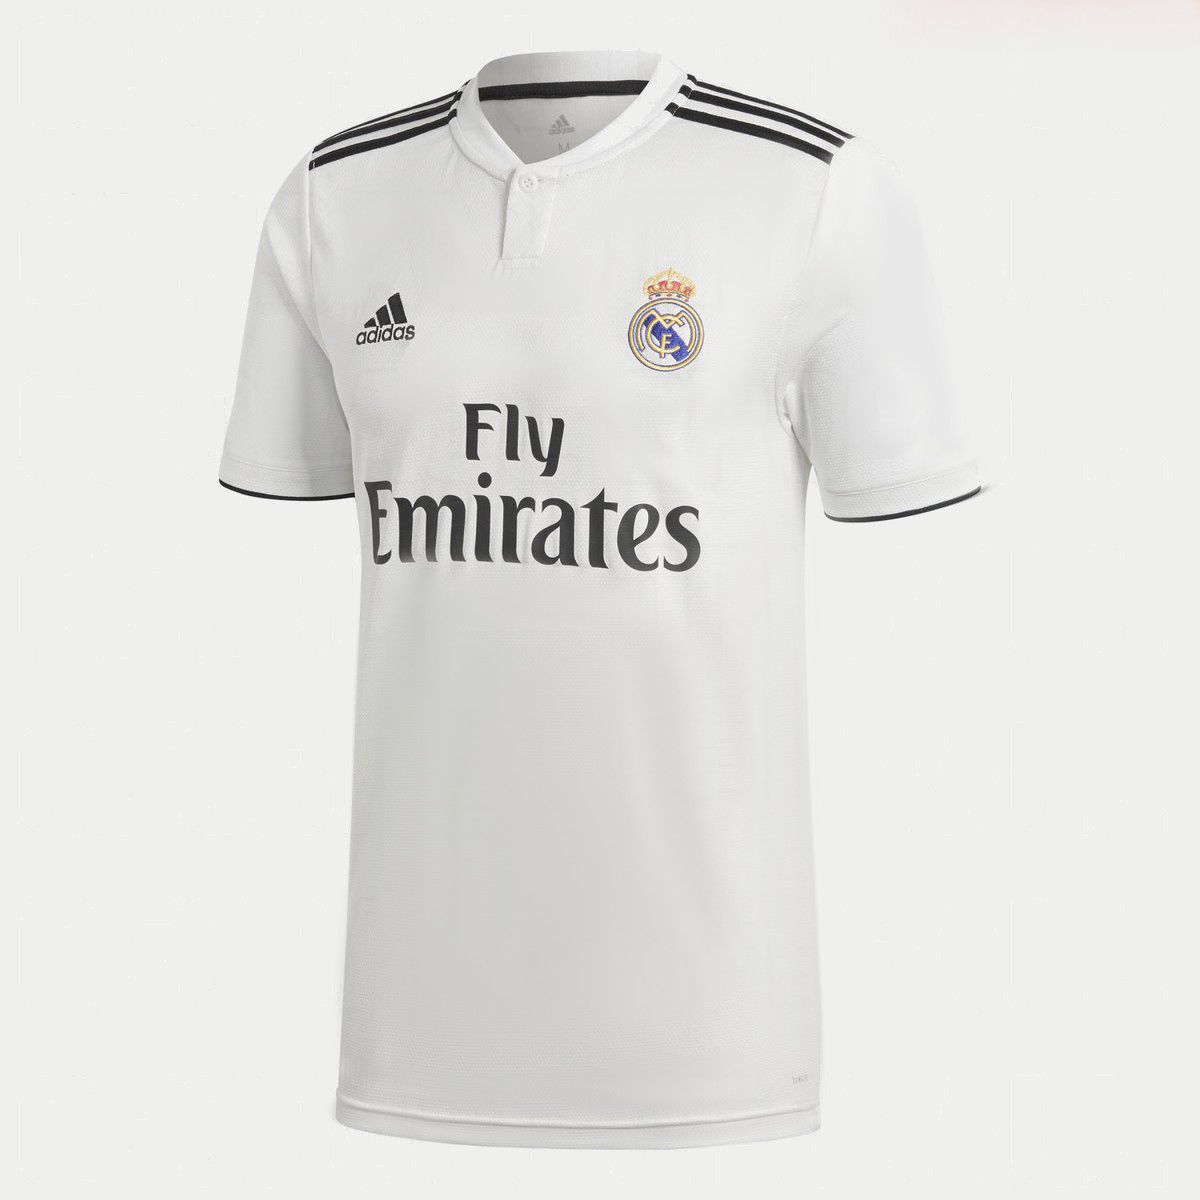 Real Madrid 2019 maillot domicile football officiel Adidas